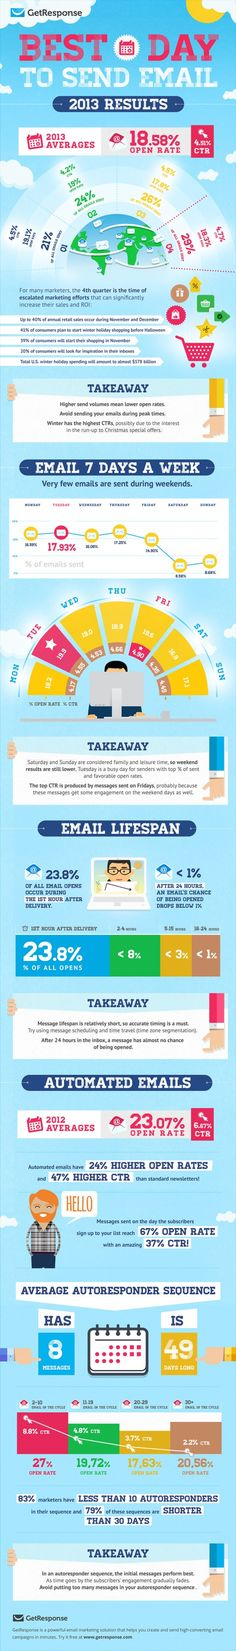 The best times to send marketing emails.